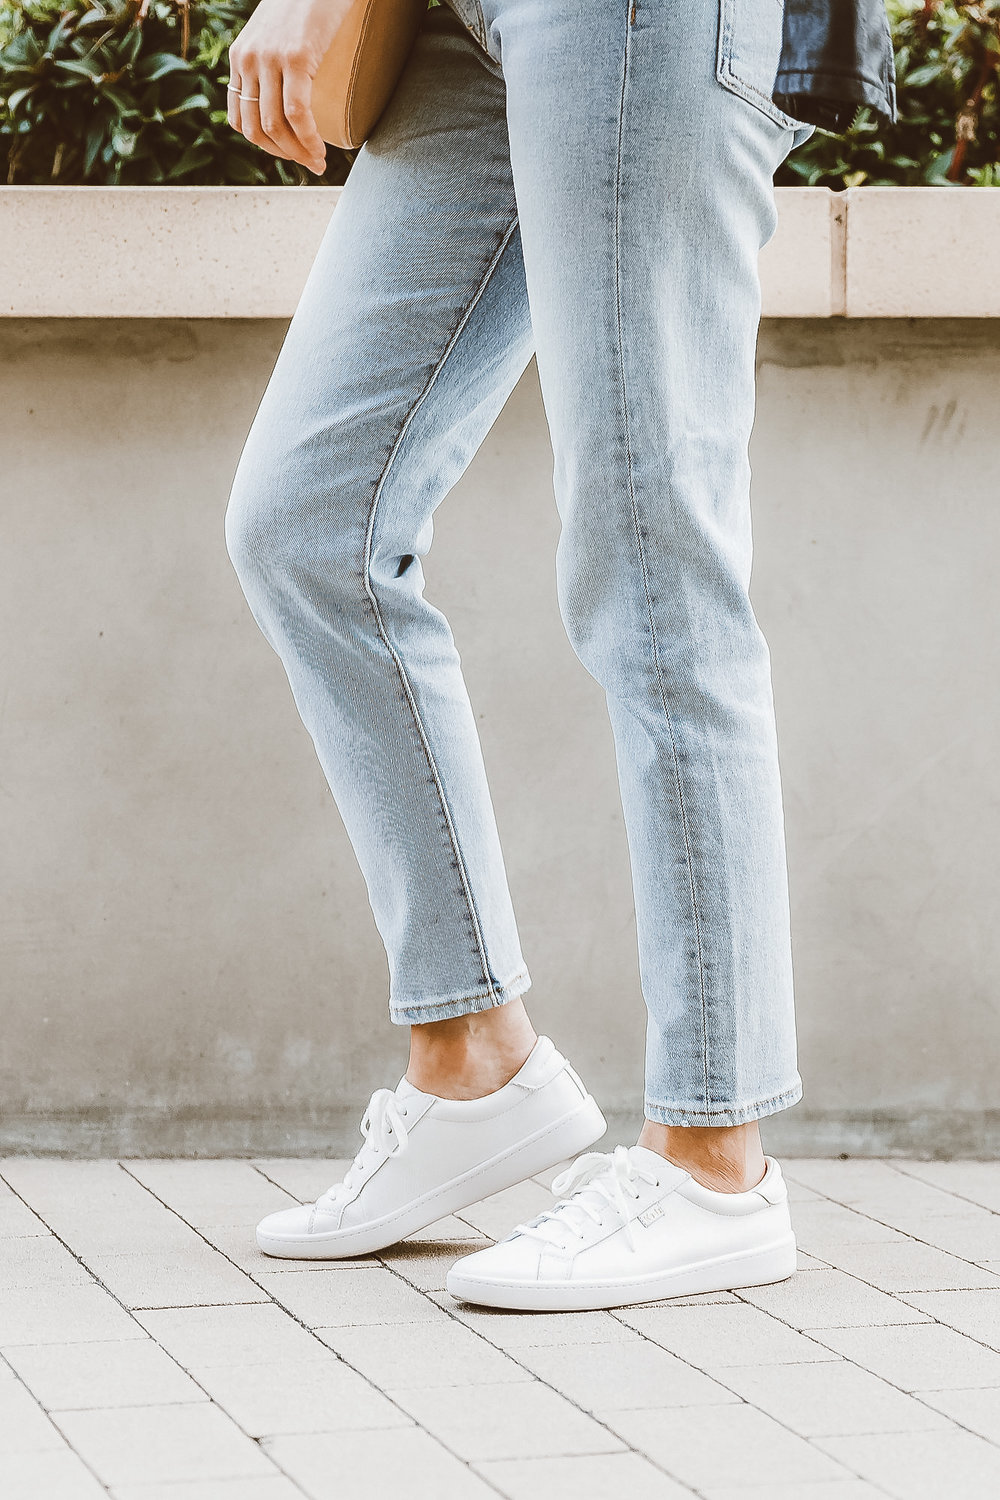 jeans and white sneaker style